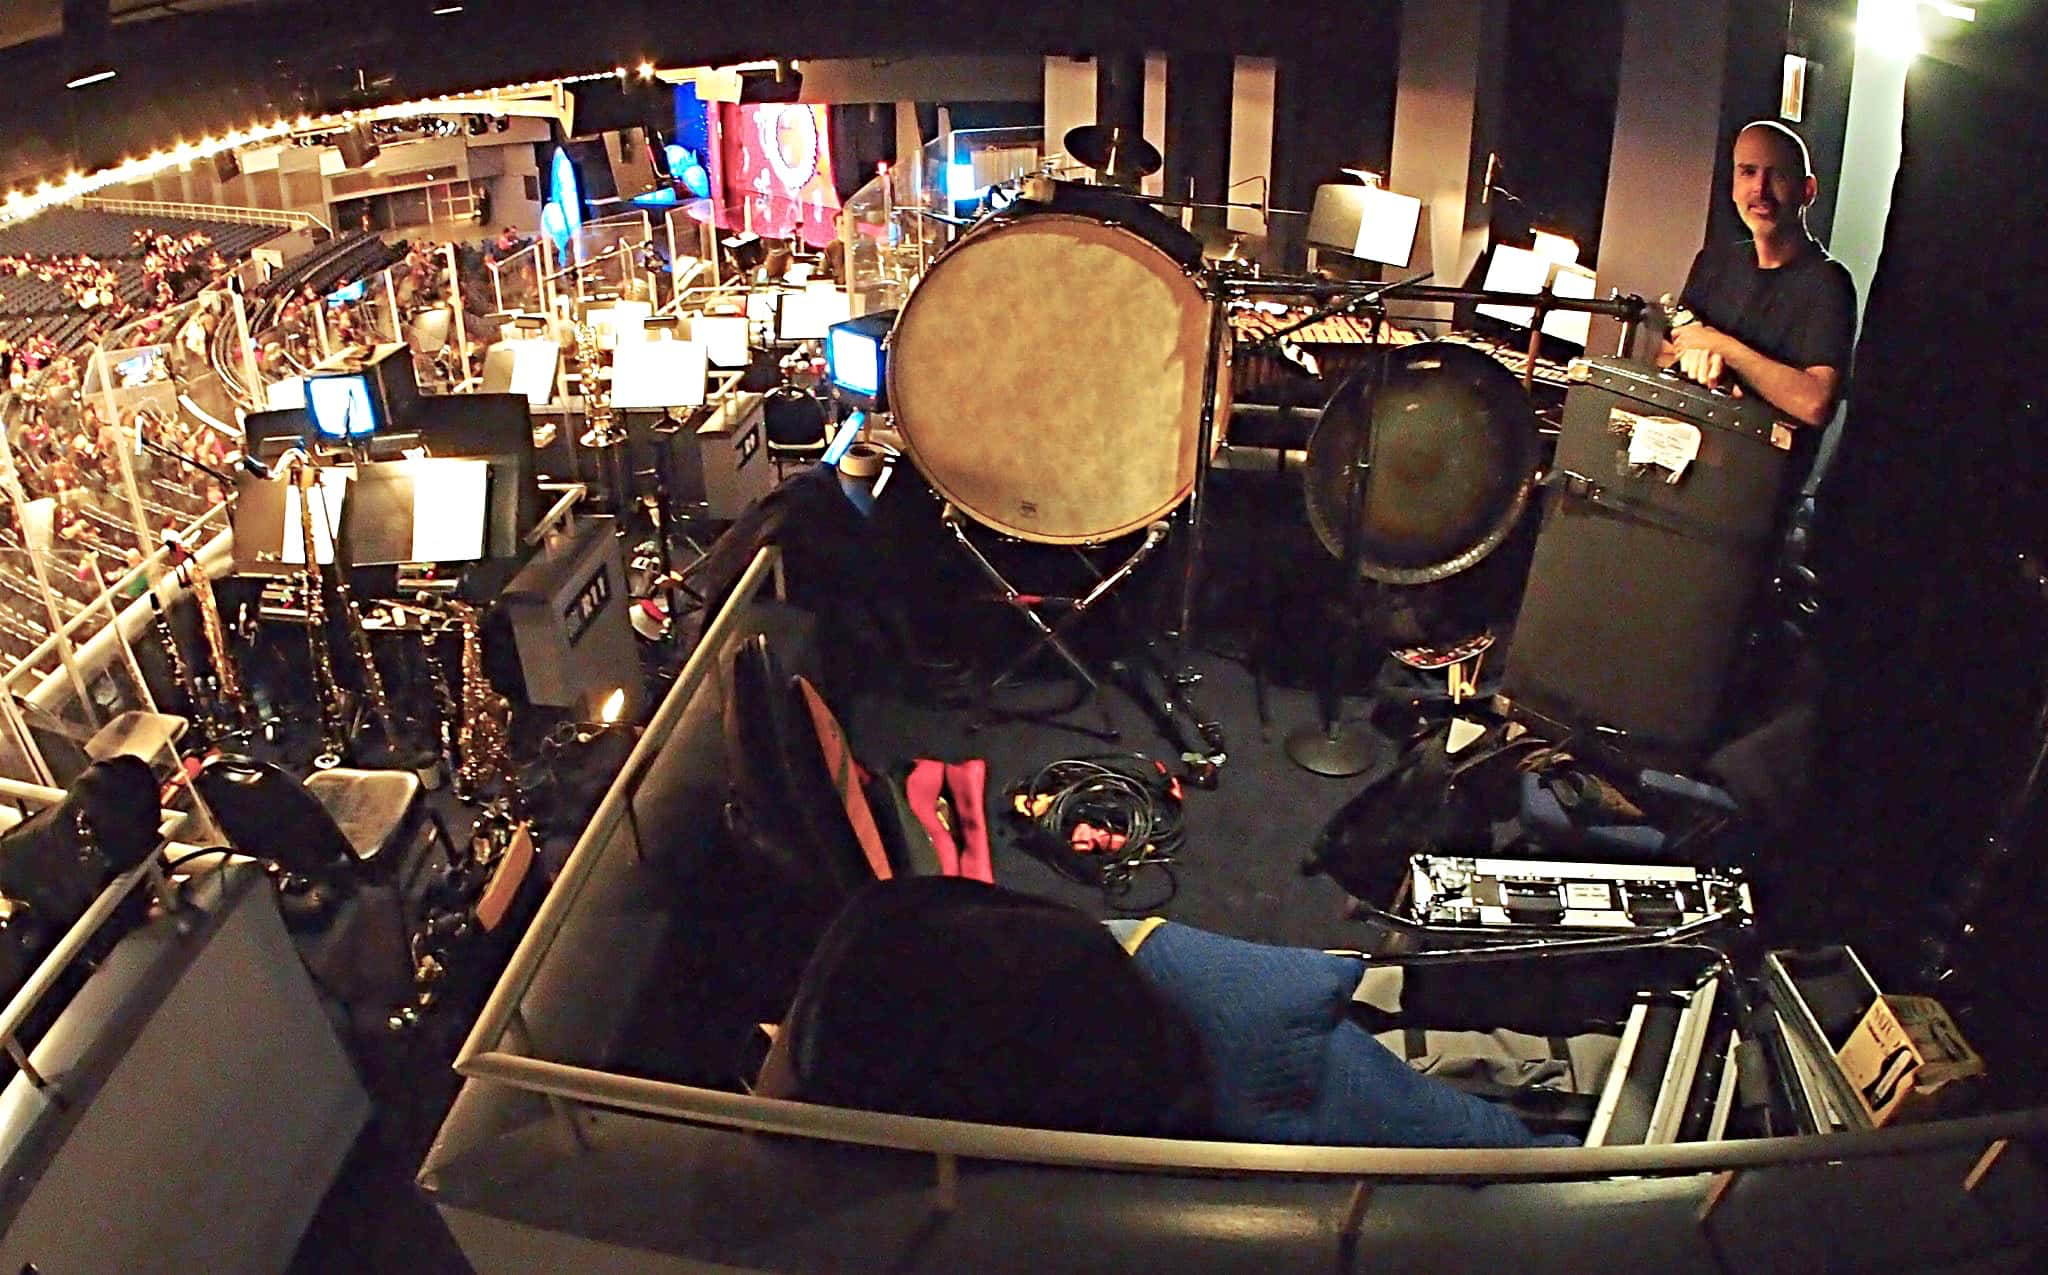 Dave Roth's percussion setup for the Madison Square Garden production of Dr Seuss' How the Grinch Stole Christmas.